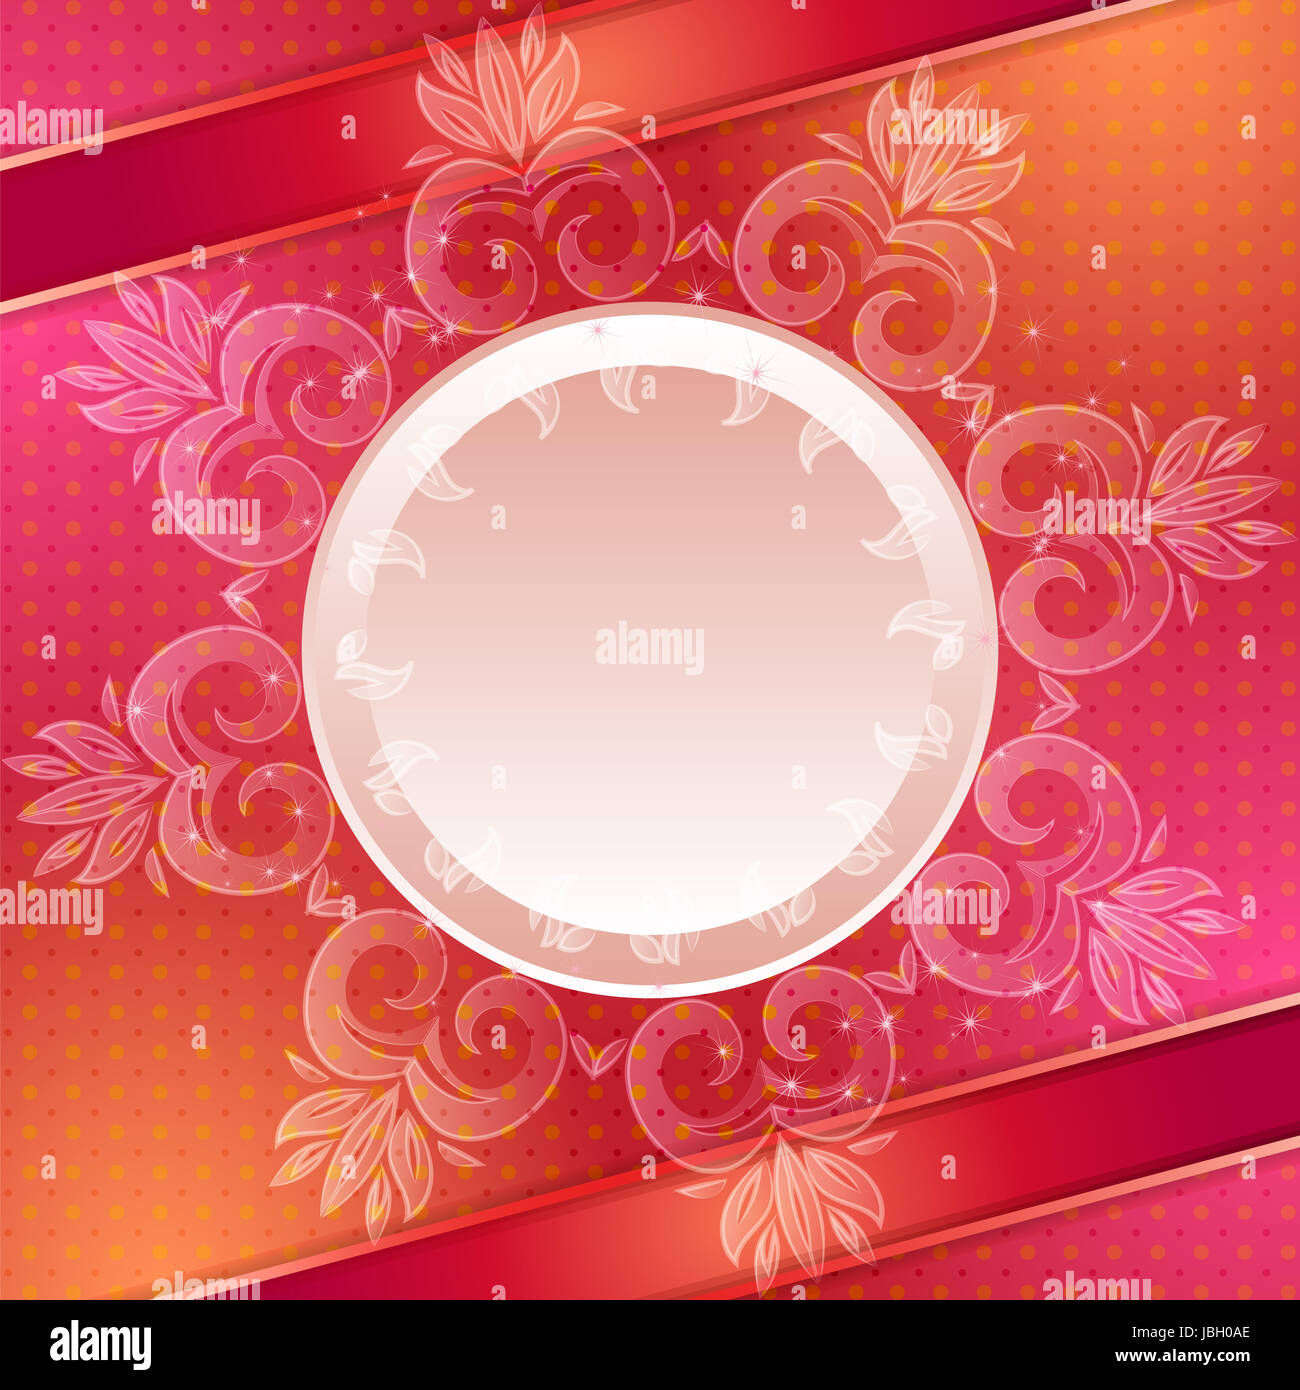 Red Vector Abstract Background Can Be Used For Banner Invitation Stock Photo Alamy